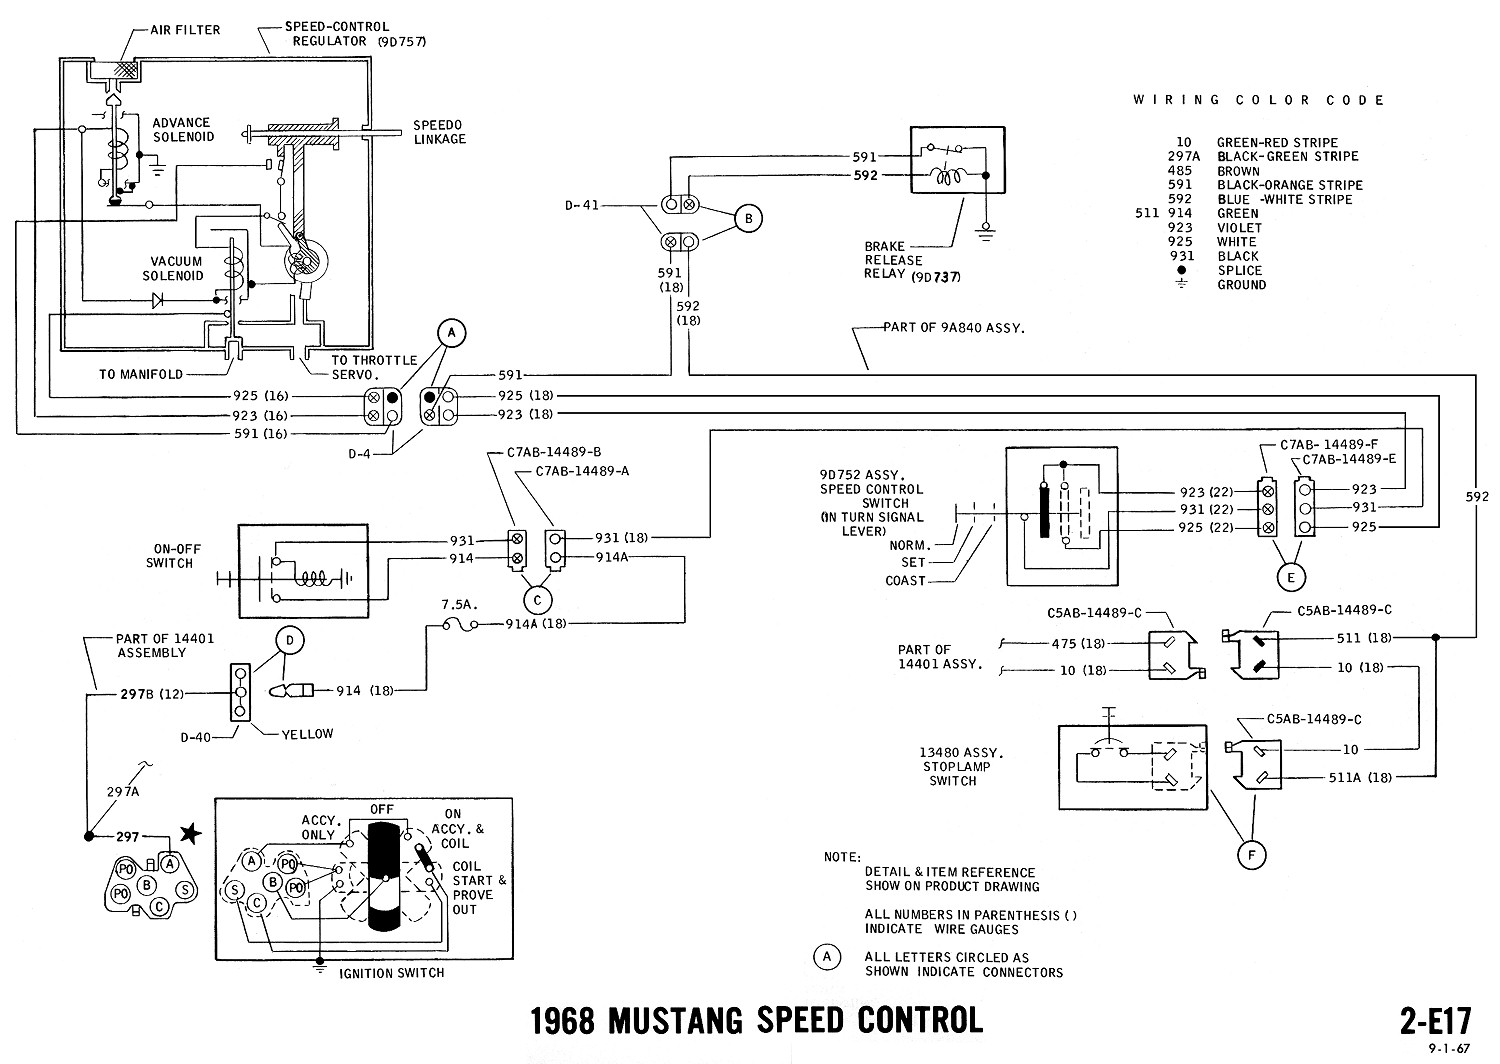 Mustang Coupe Wiring Diagram Free Download Wiring Diagram Schematic